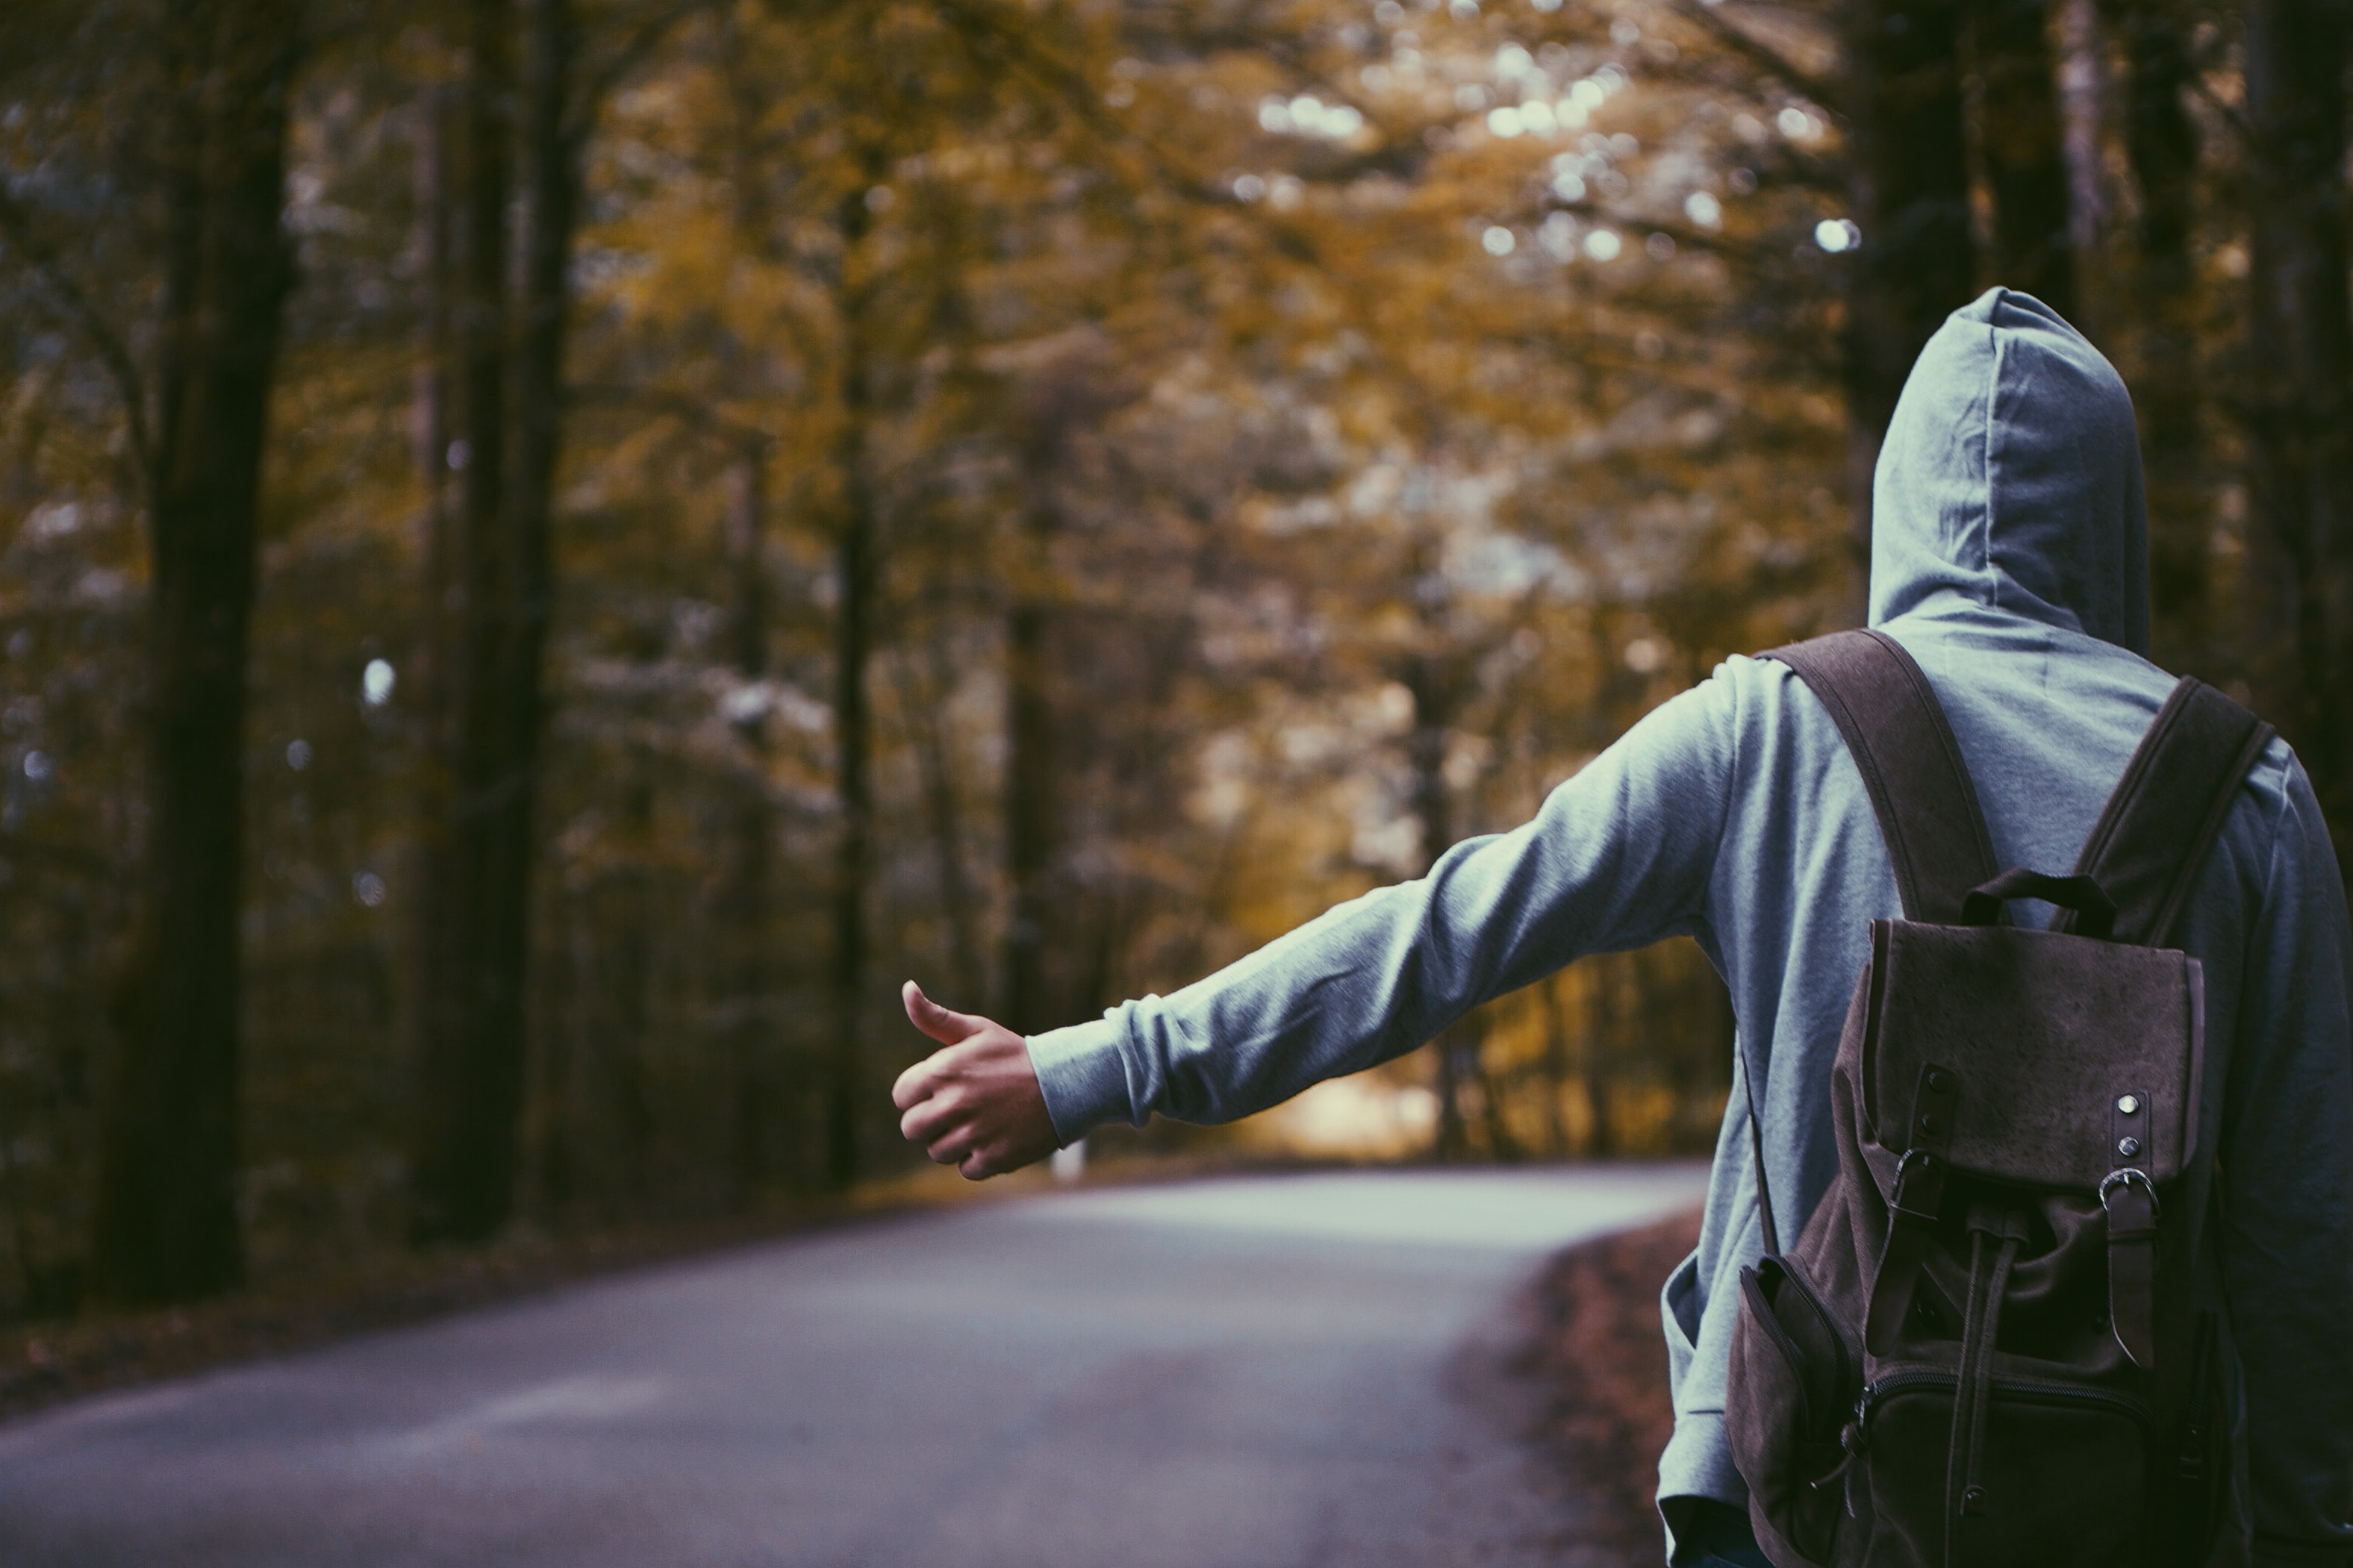 A hooded hitchhiker with a backpack extending his thumb on the side of an empty road